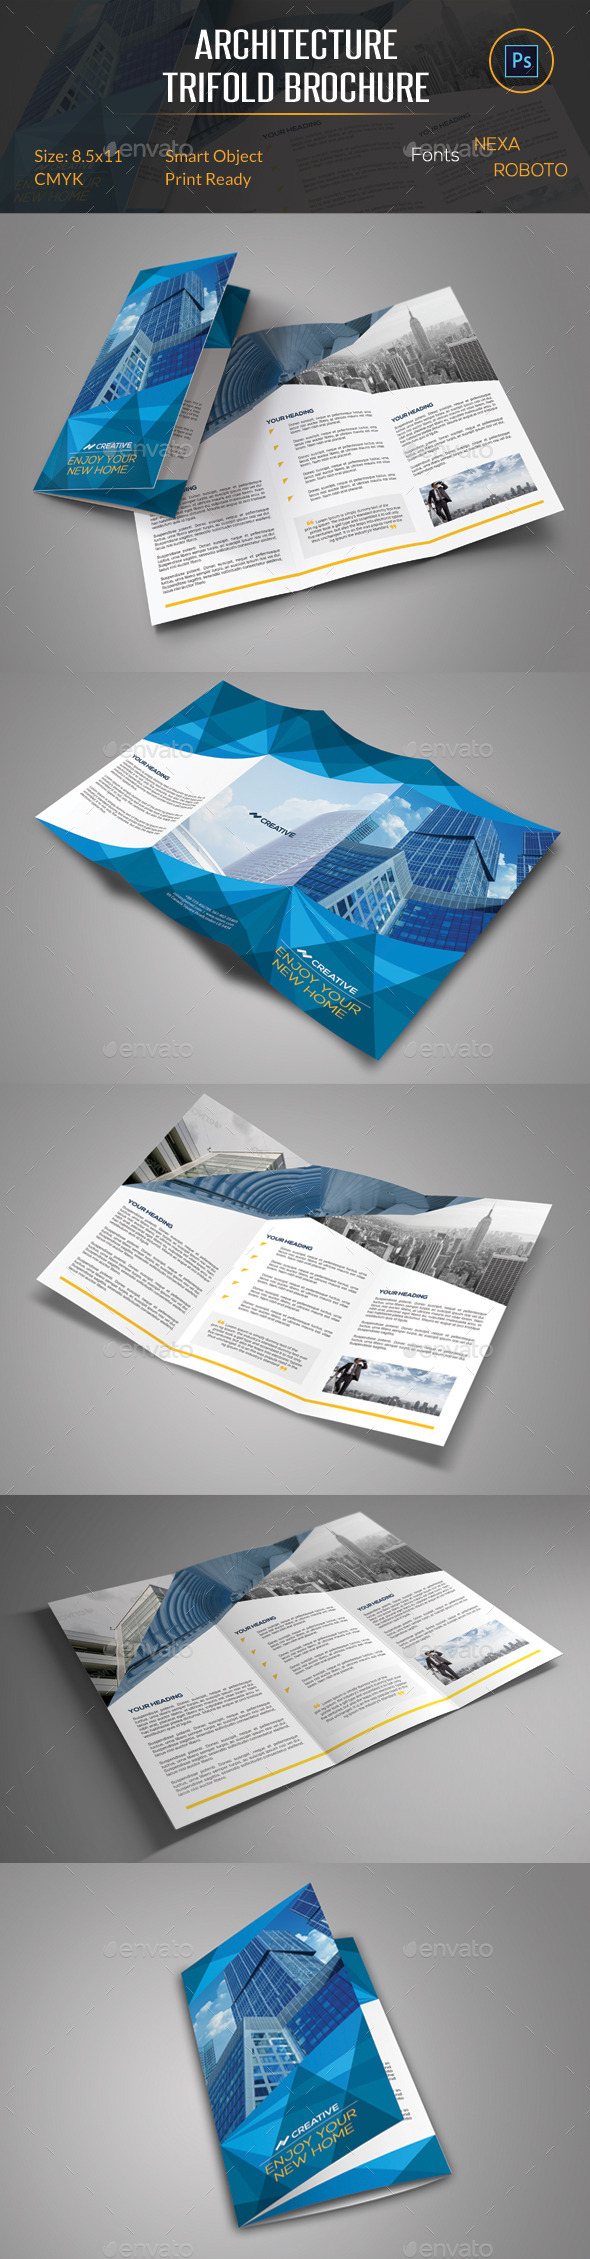 GraphicRiver Architecture Trifold Brochure 10949546